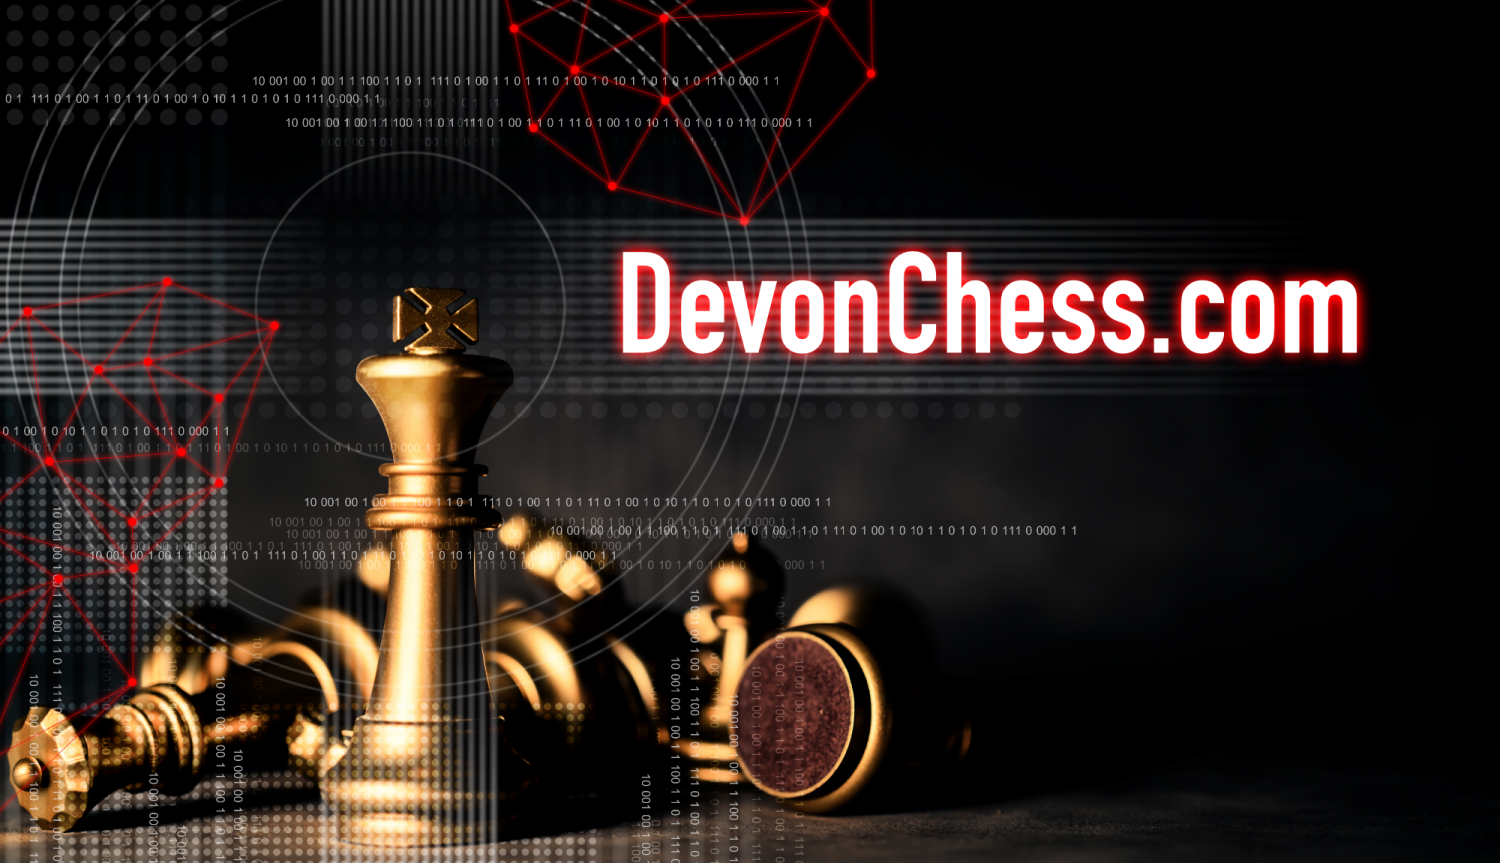 Devon Chess